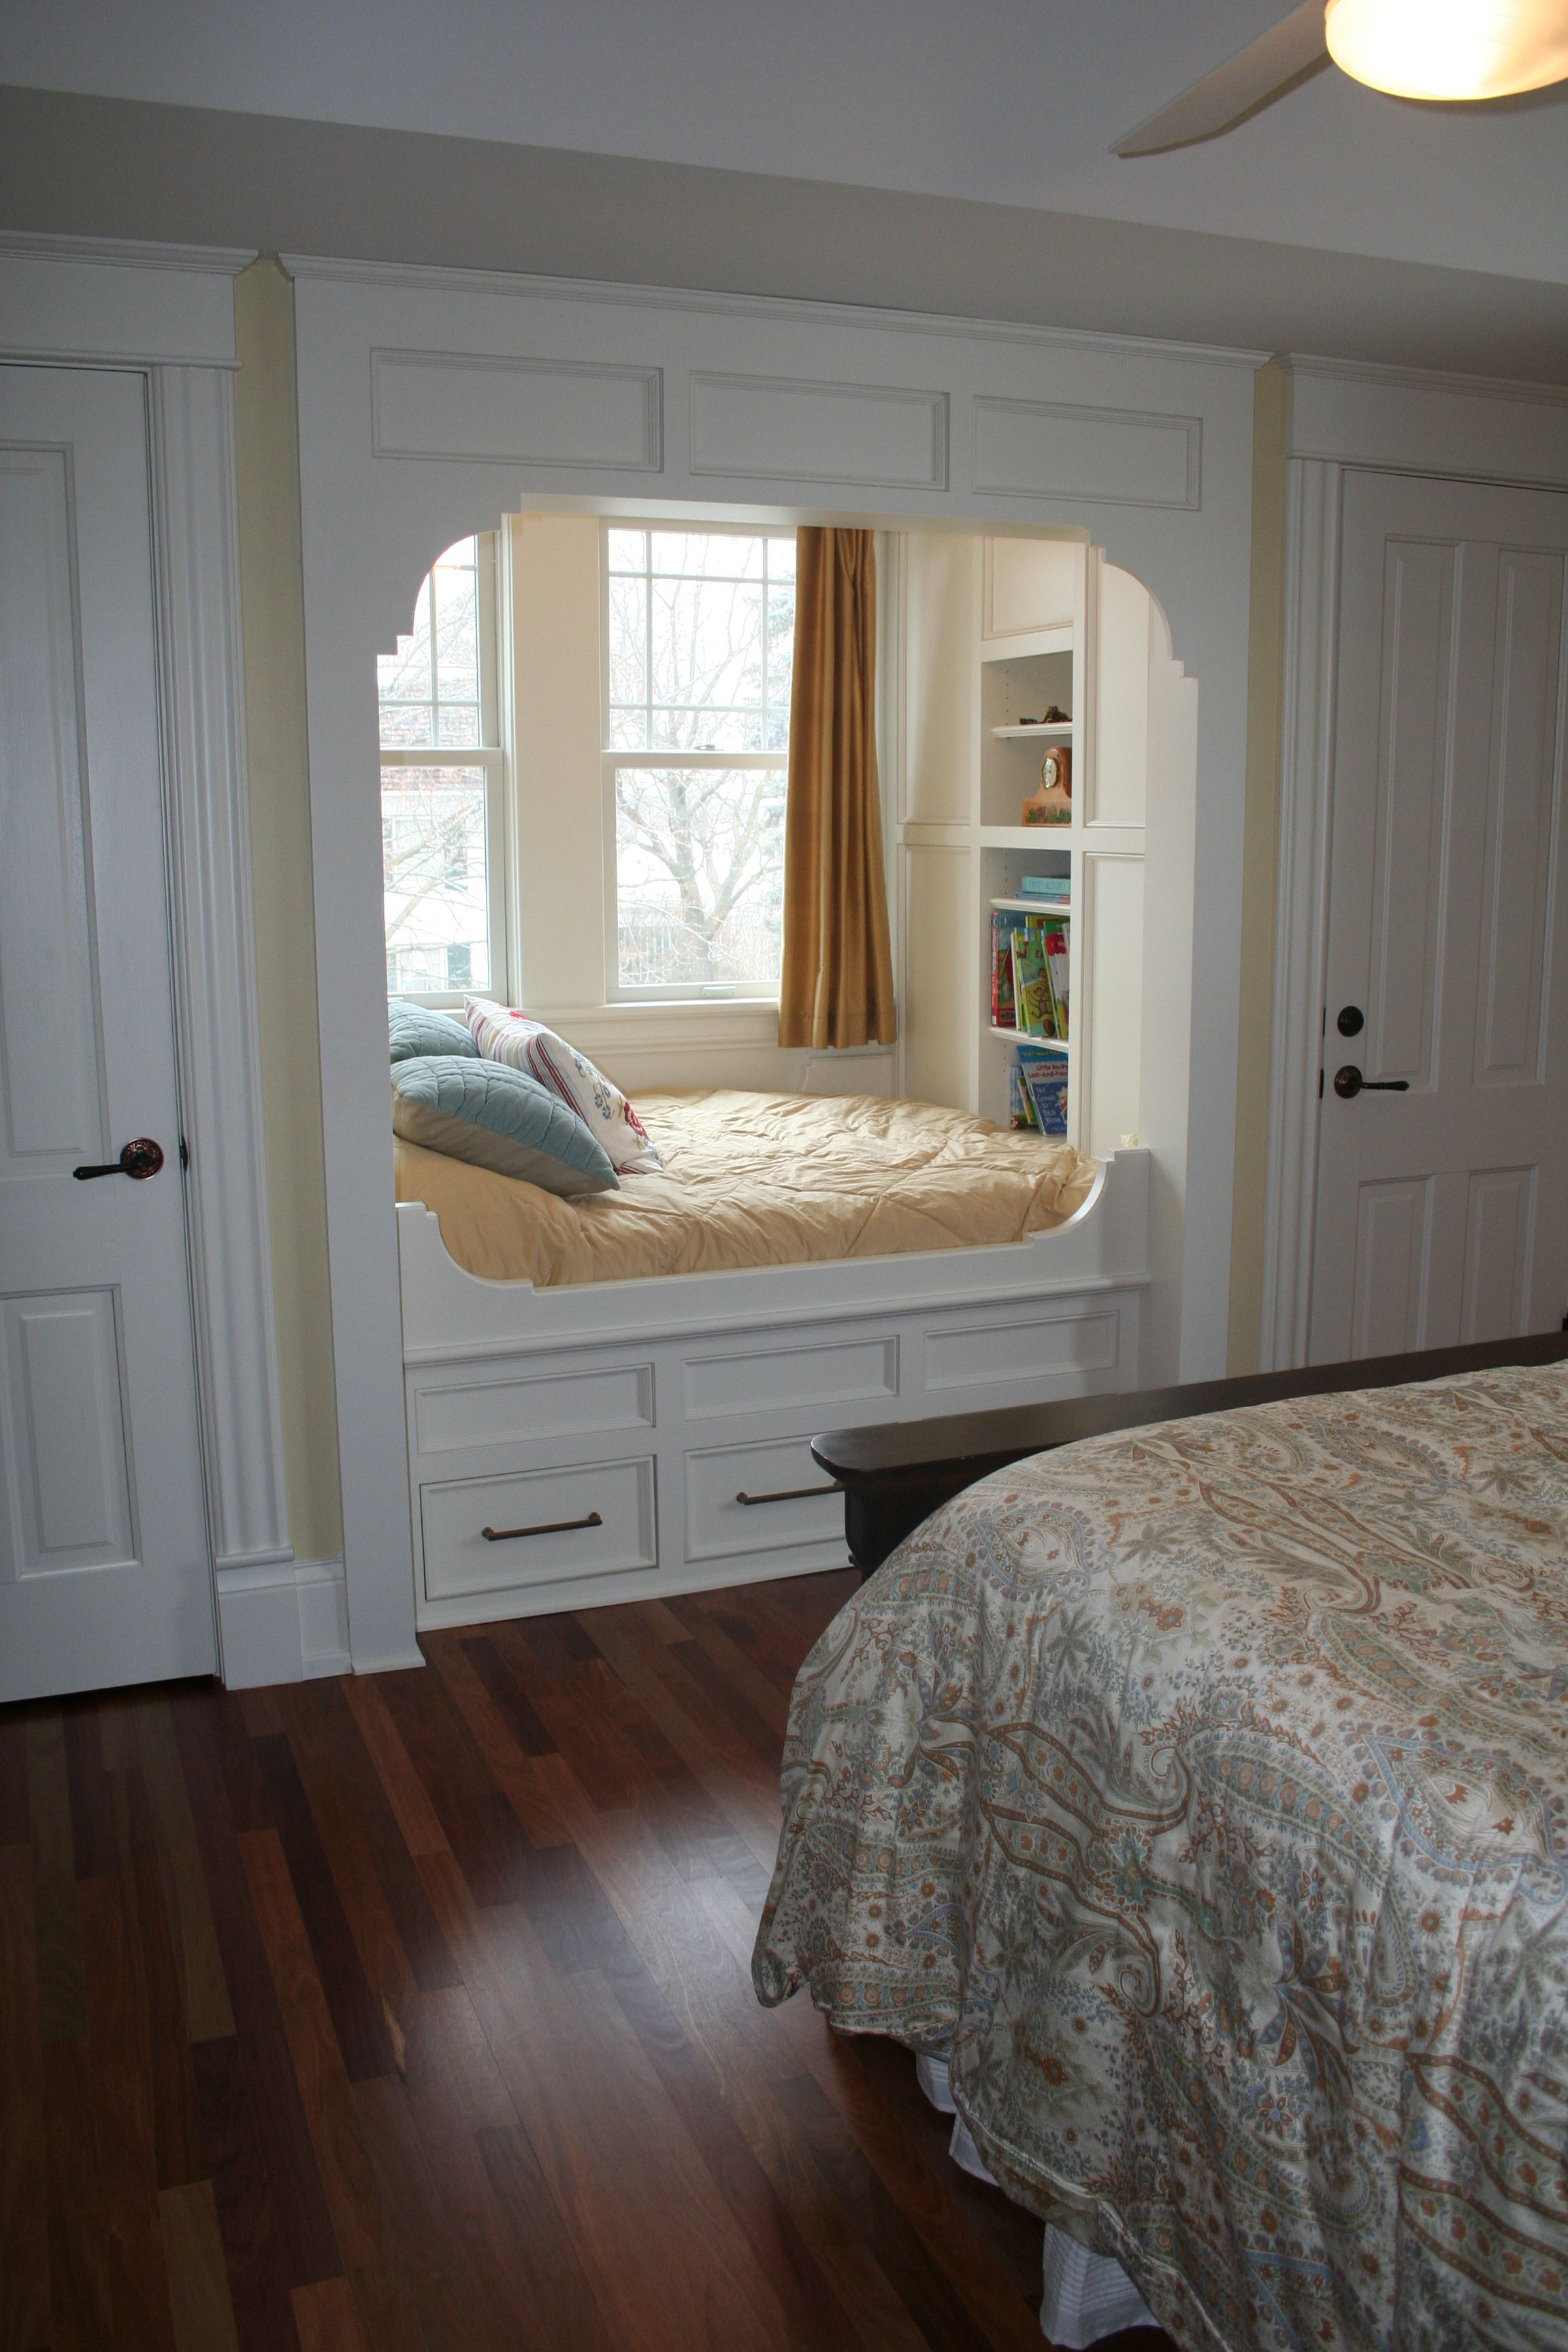 with a become of wall an for custom way into two have it solutions mind room closets one beds trends do out you office that yoga will studio sewing closet wallbeds in the what transforming bed imagine cabinetry